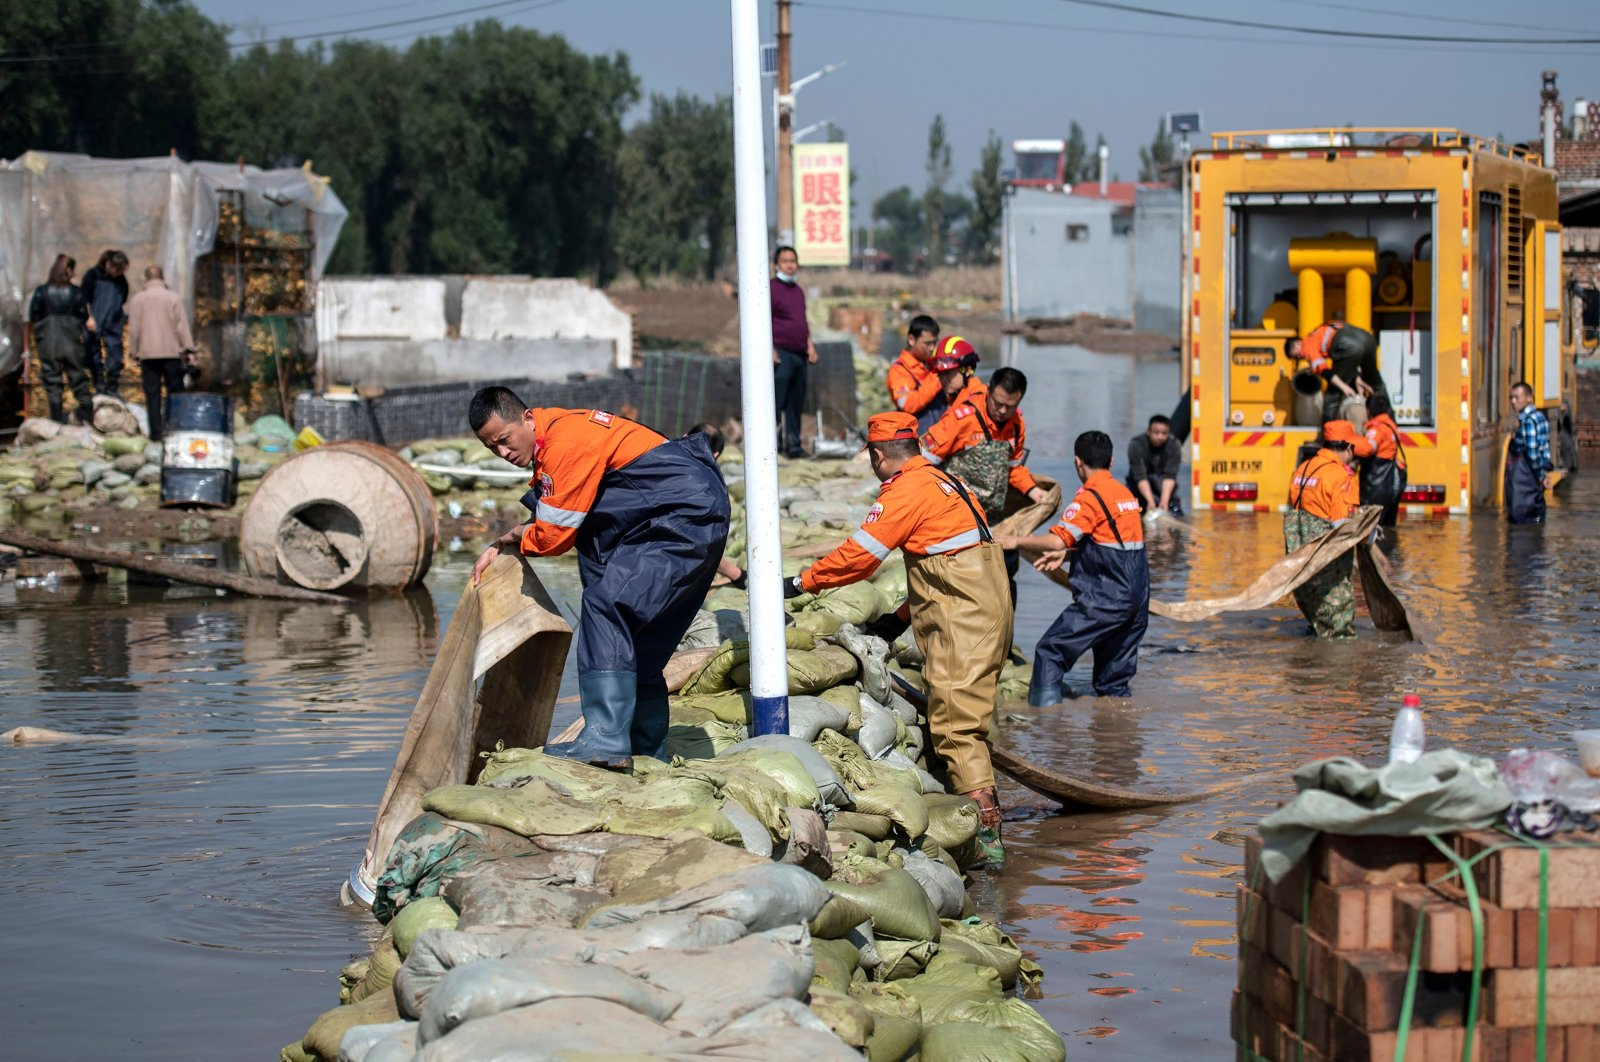 Rescue workers drain off flood waters after heavy rainfall at a flooded area in Jiexiu in the city of Jinzhong in China's northern Shanxi province on Oct. 11, 2021. (AFP Photo)